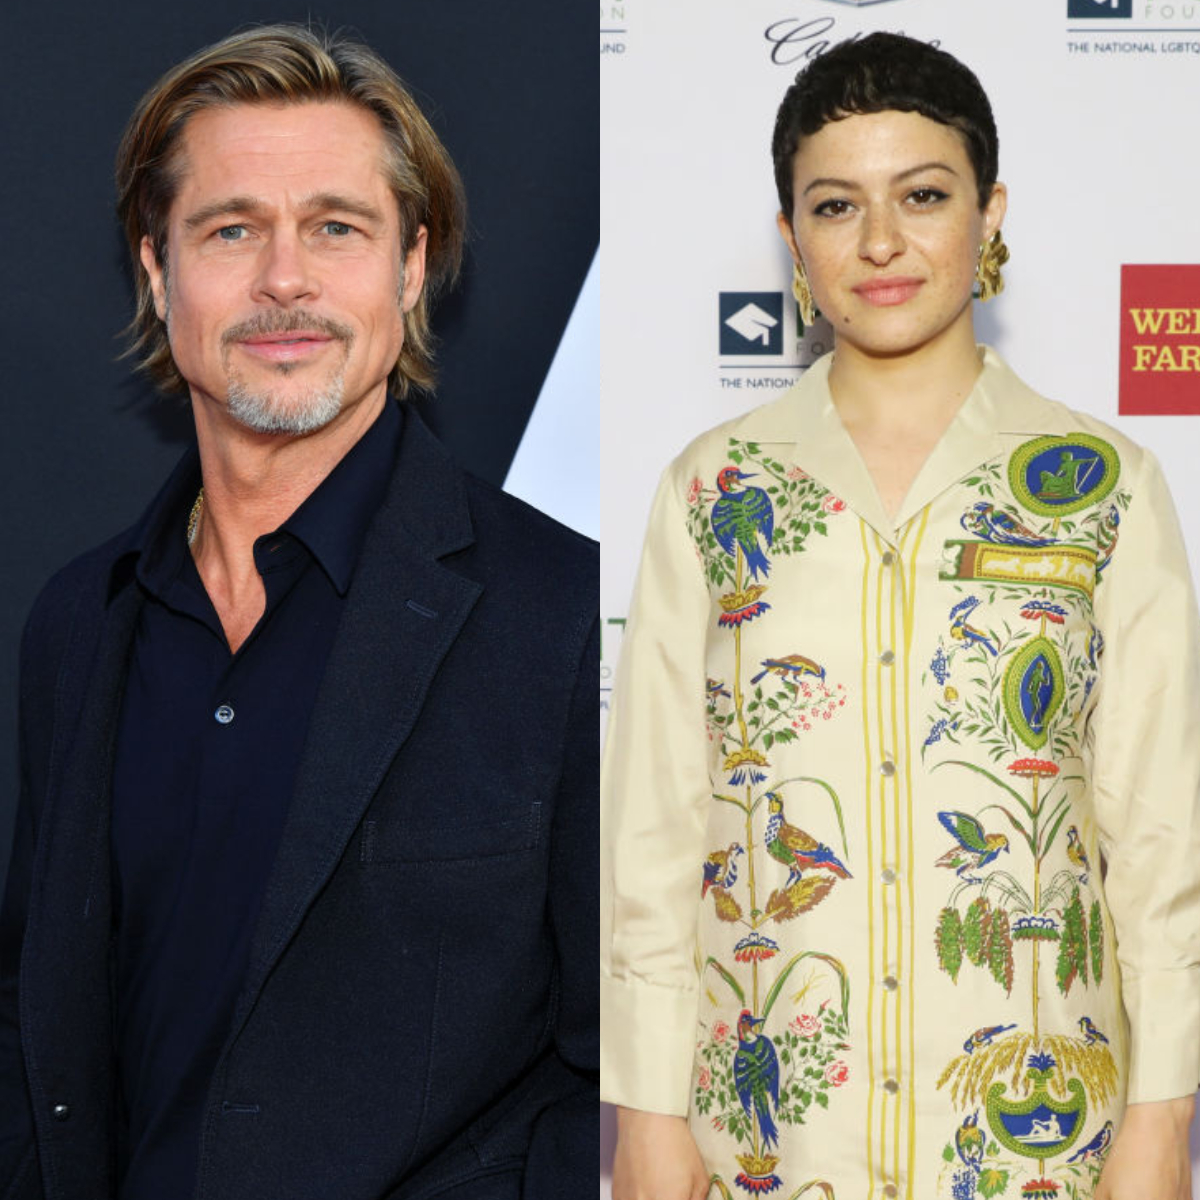 Brad Pitt sparks dating rumours with Alia Shawkat from Arrested Development after being spotted multiple times